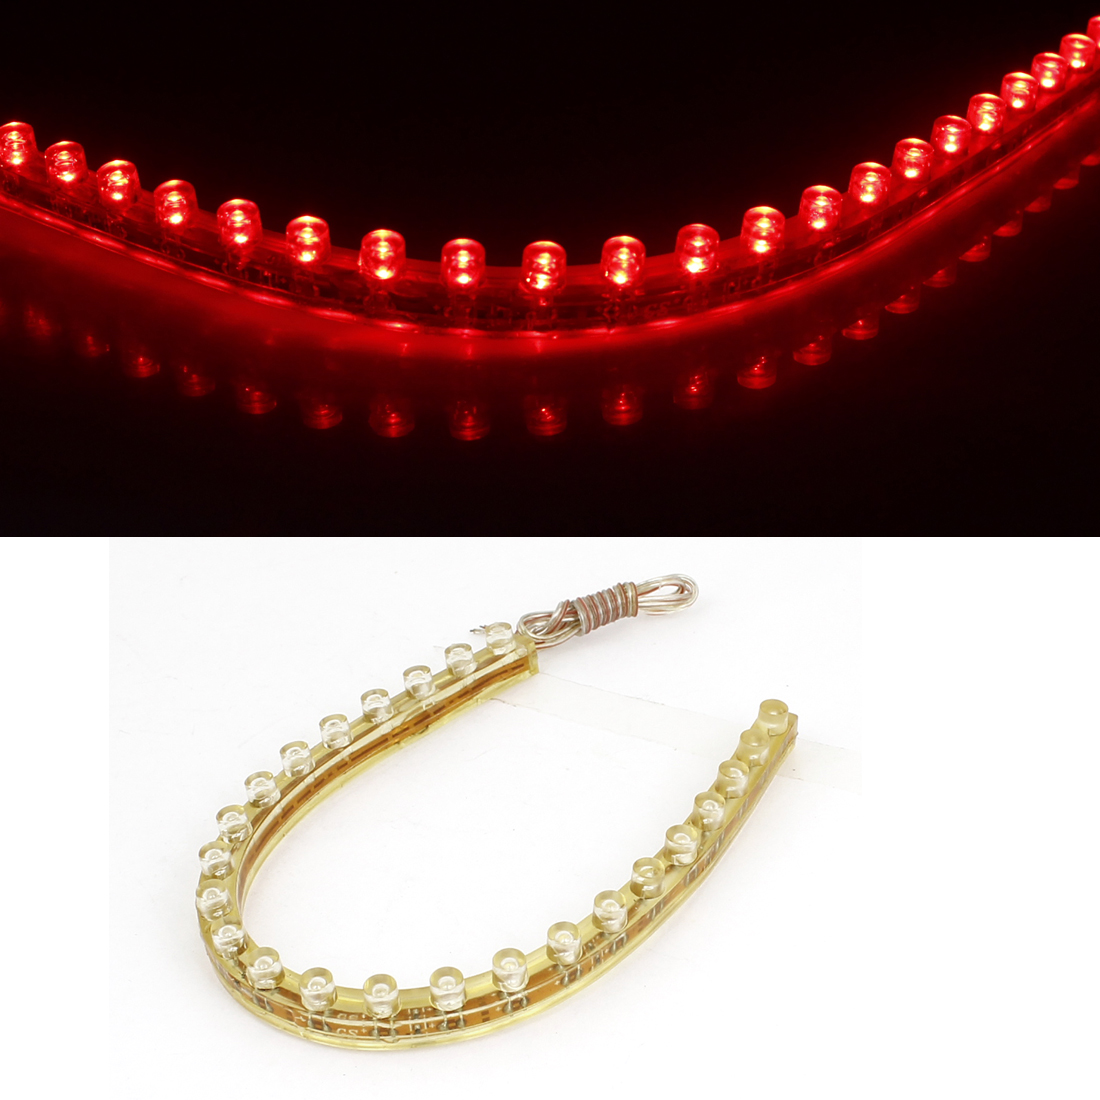 DC 12V Self Sticker PVC Red 24 LEDs Strip Light Lamp for Auto Vehicle